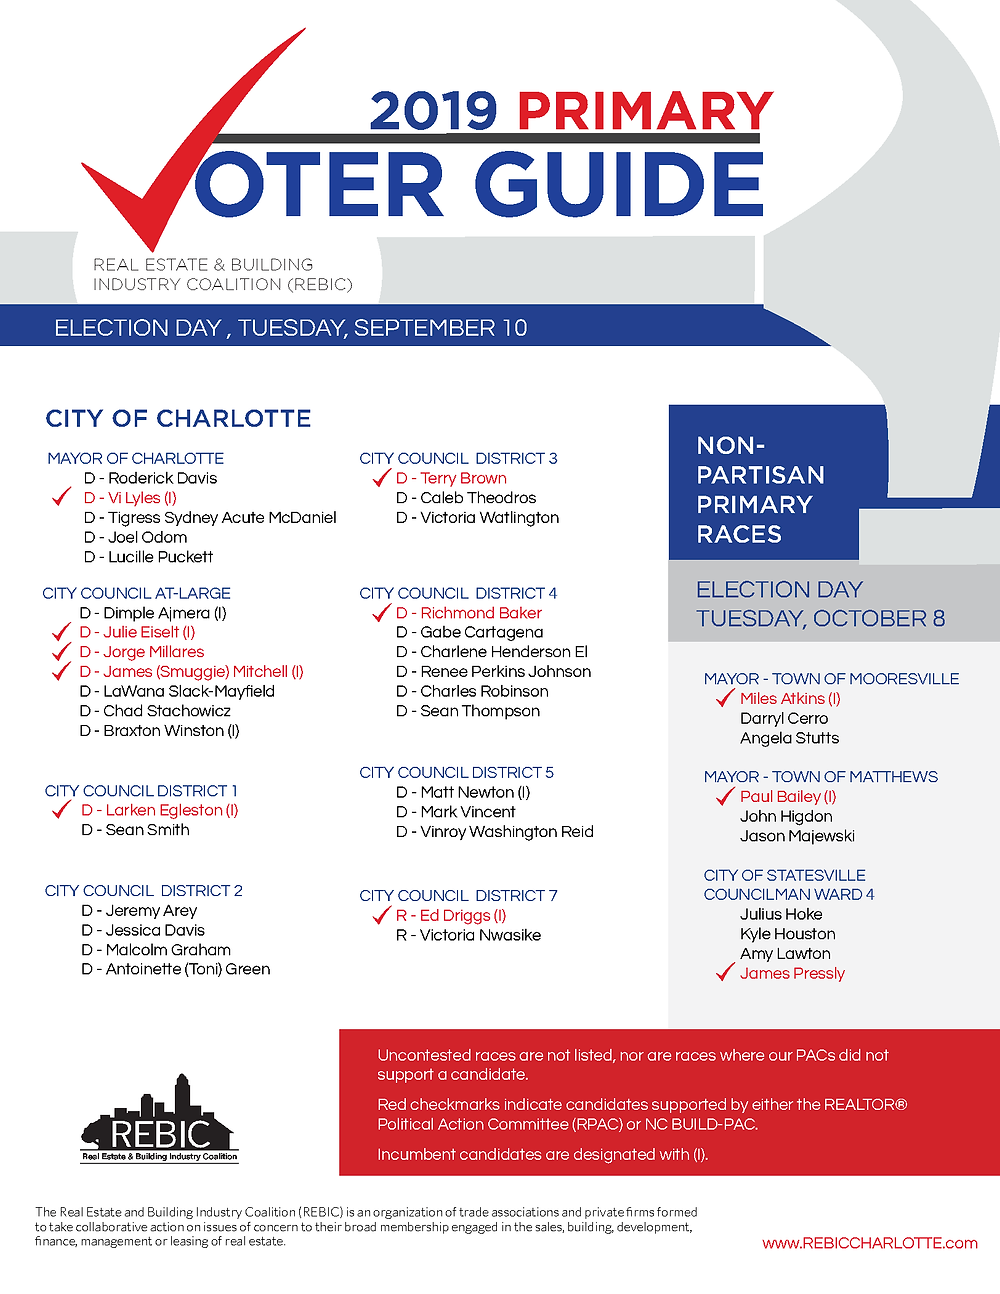 2019 REBIC Primary Voter Guide png